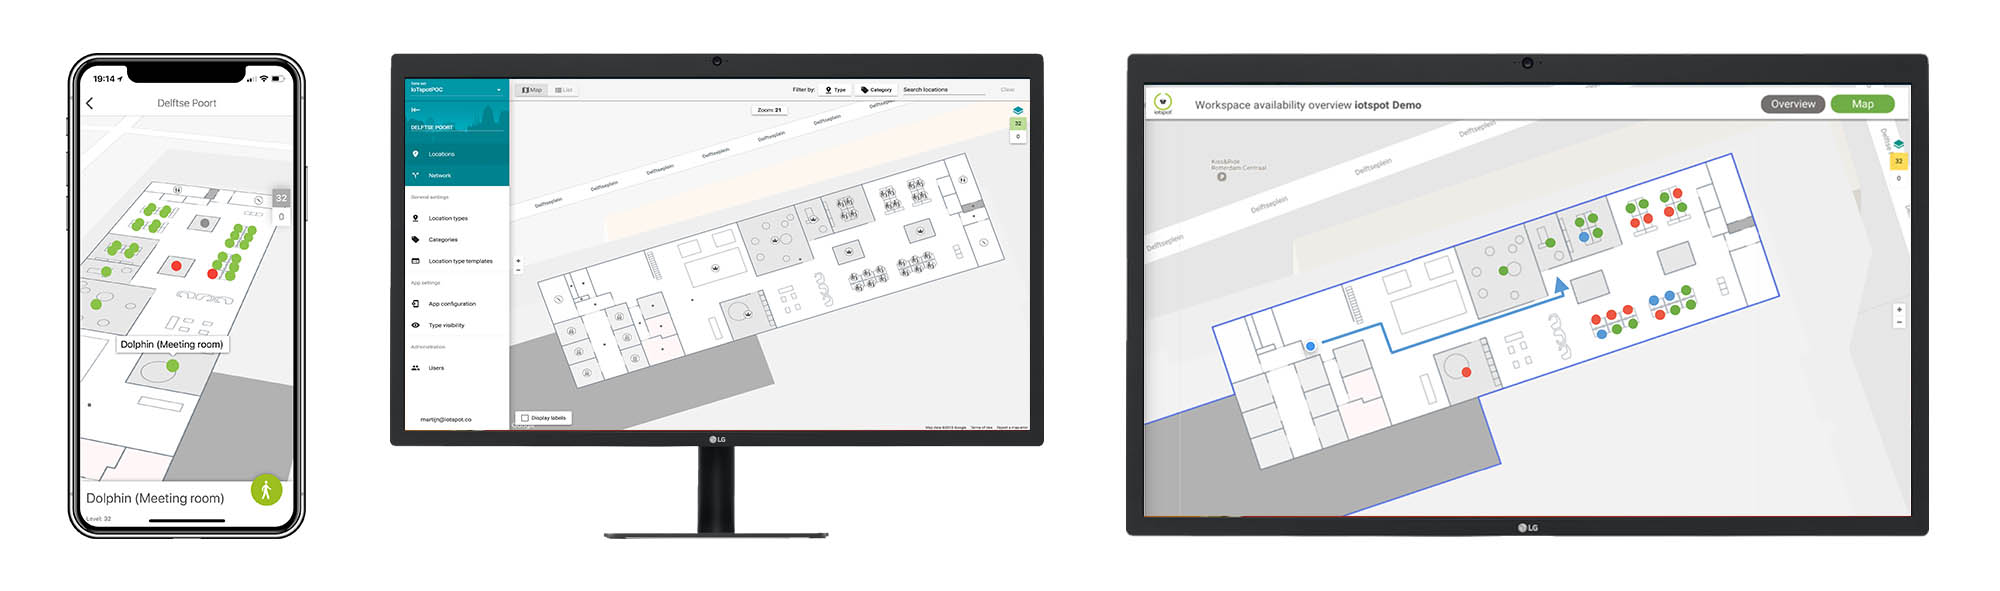 6. Map view of the office - This feature allows you to switch between the standard Gridview to the Map view of your offices in our App. With the help of Google Indoor Maps we can create an interactive map inclusive routing to all workplaces, meeting rooms and self manegable 'points of interest'.Annual price: €1,- per m2 office map.